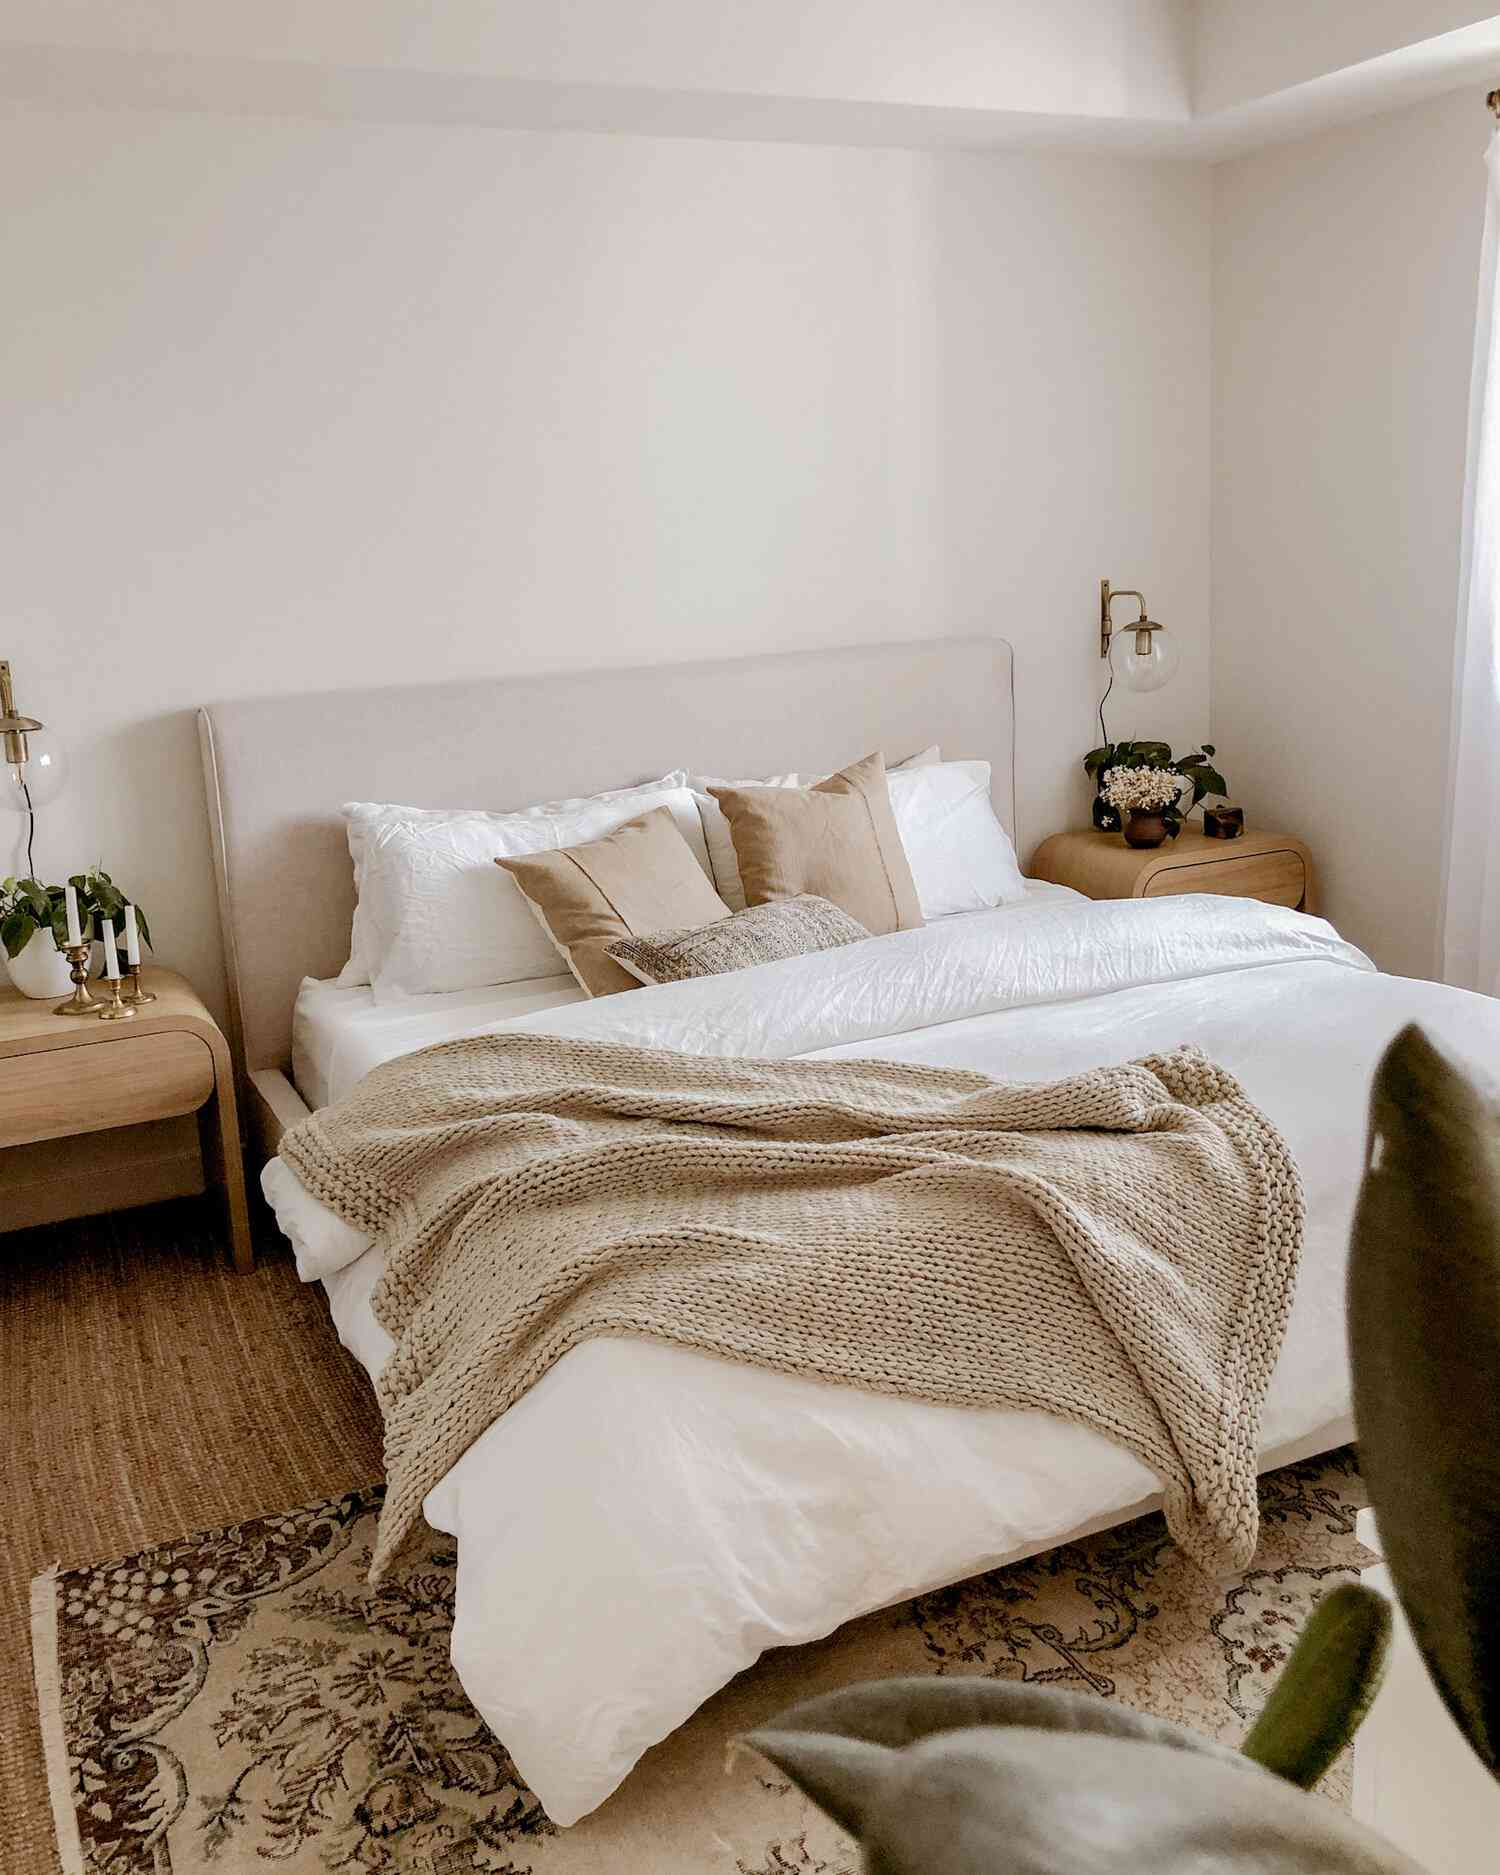 Soft neutral bedroom with white comforter and beige knit blanket.